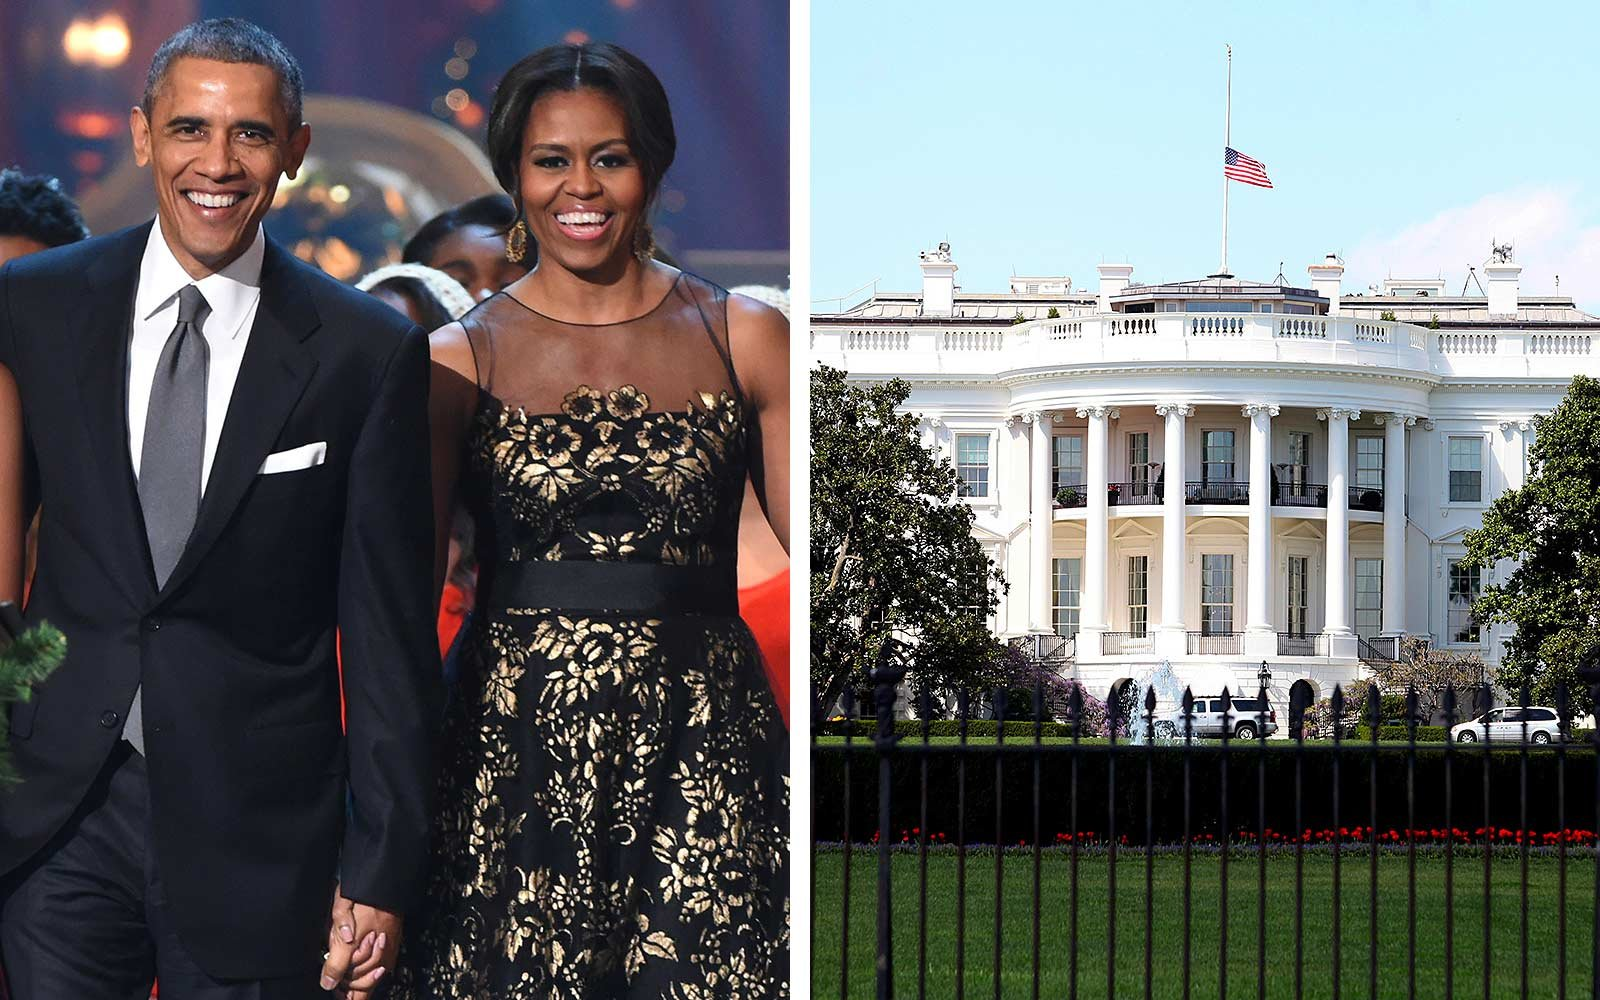 Get a Personal Tour of the White House with the Obamas via New Virtual Reality Experience